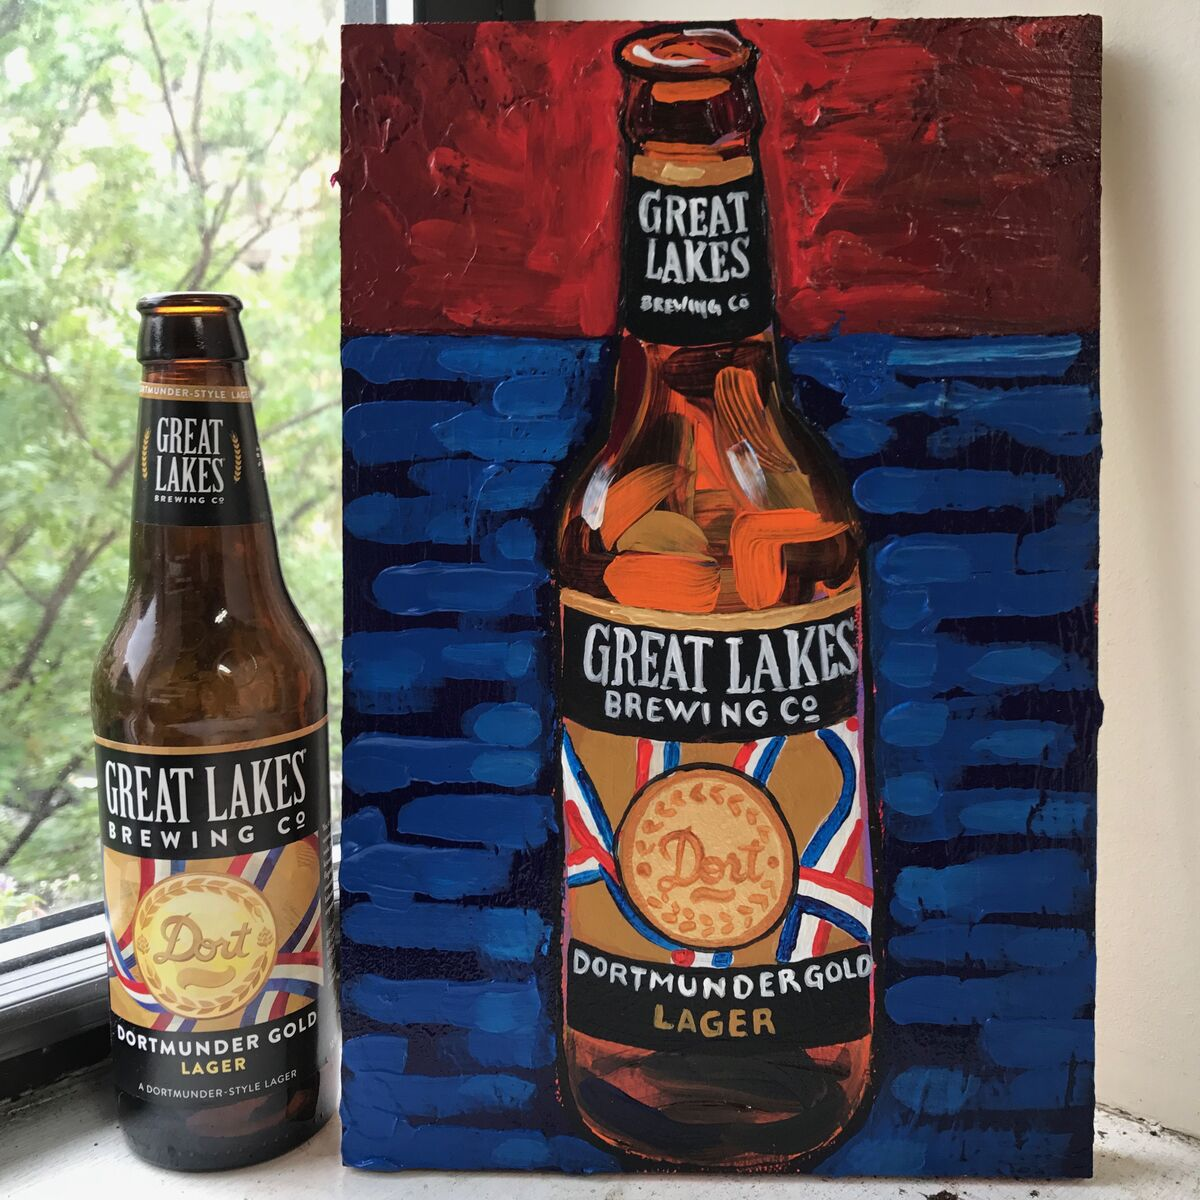 Tom Sanford, 88 - Great Lakes Lager, 2017. Courtesy of the artist.